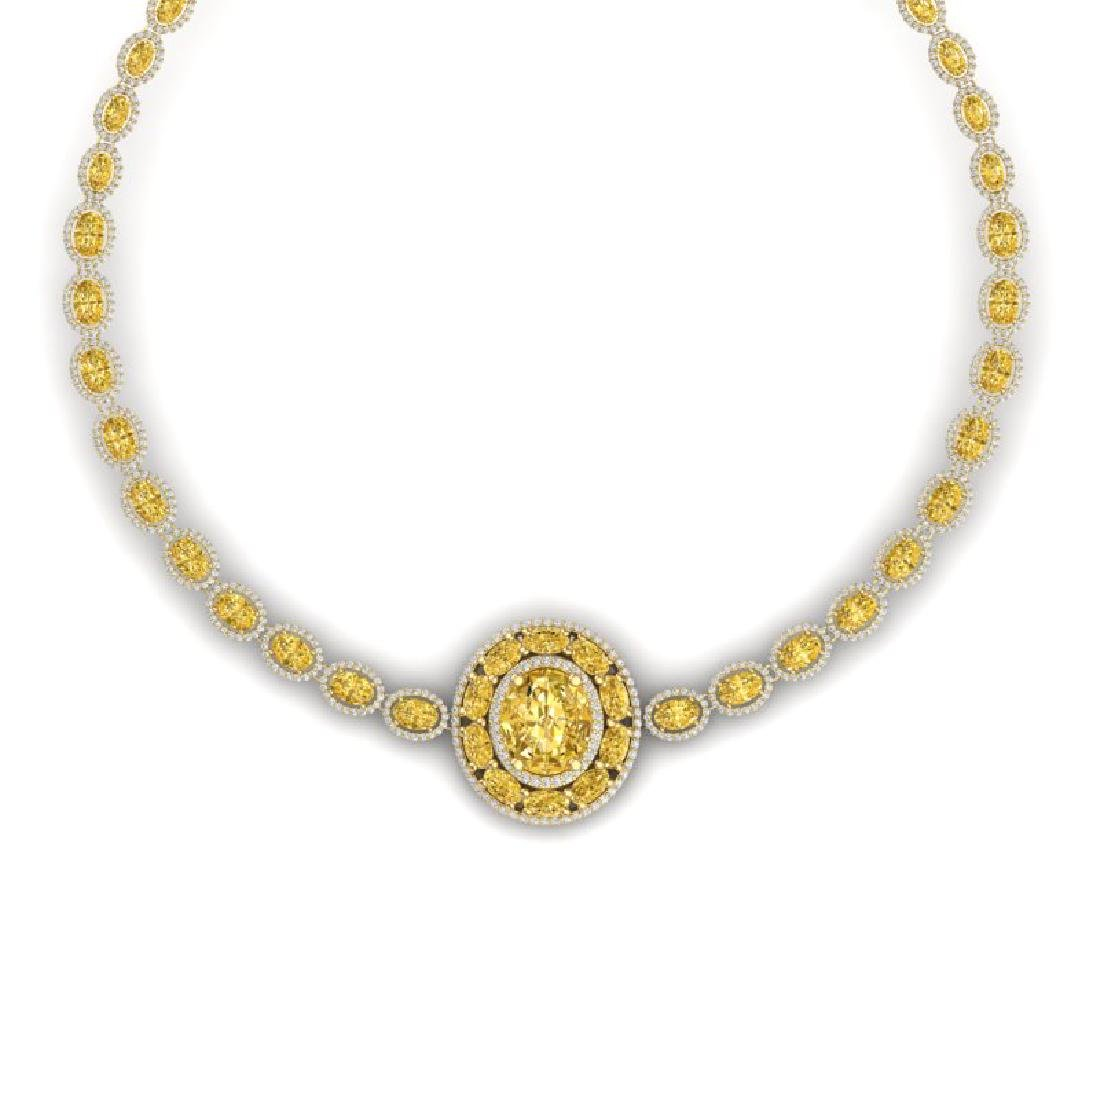 39.04 CTW Royalty Canary Citrine & VS Diamond Necklace